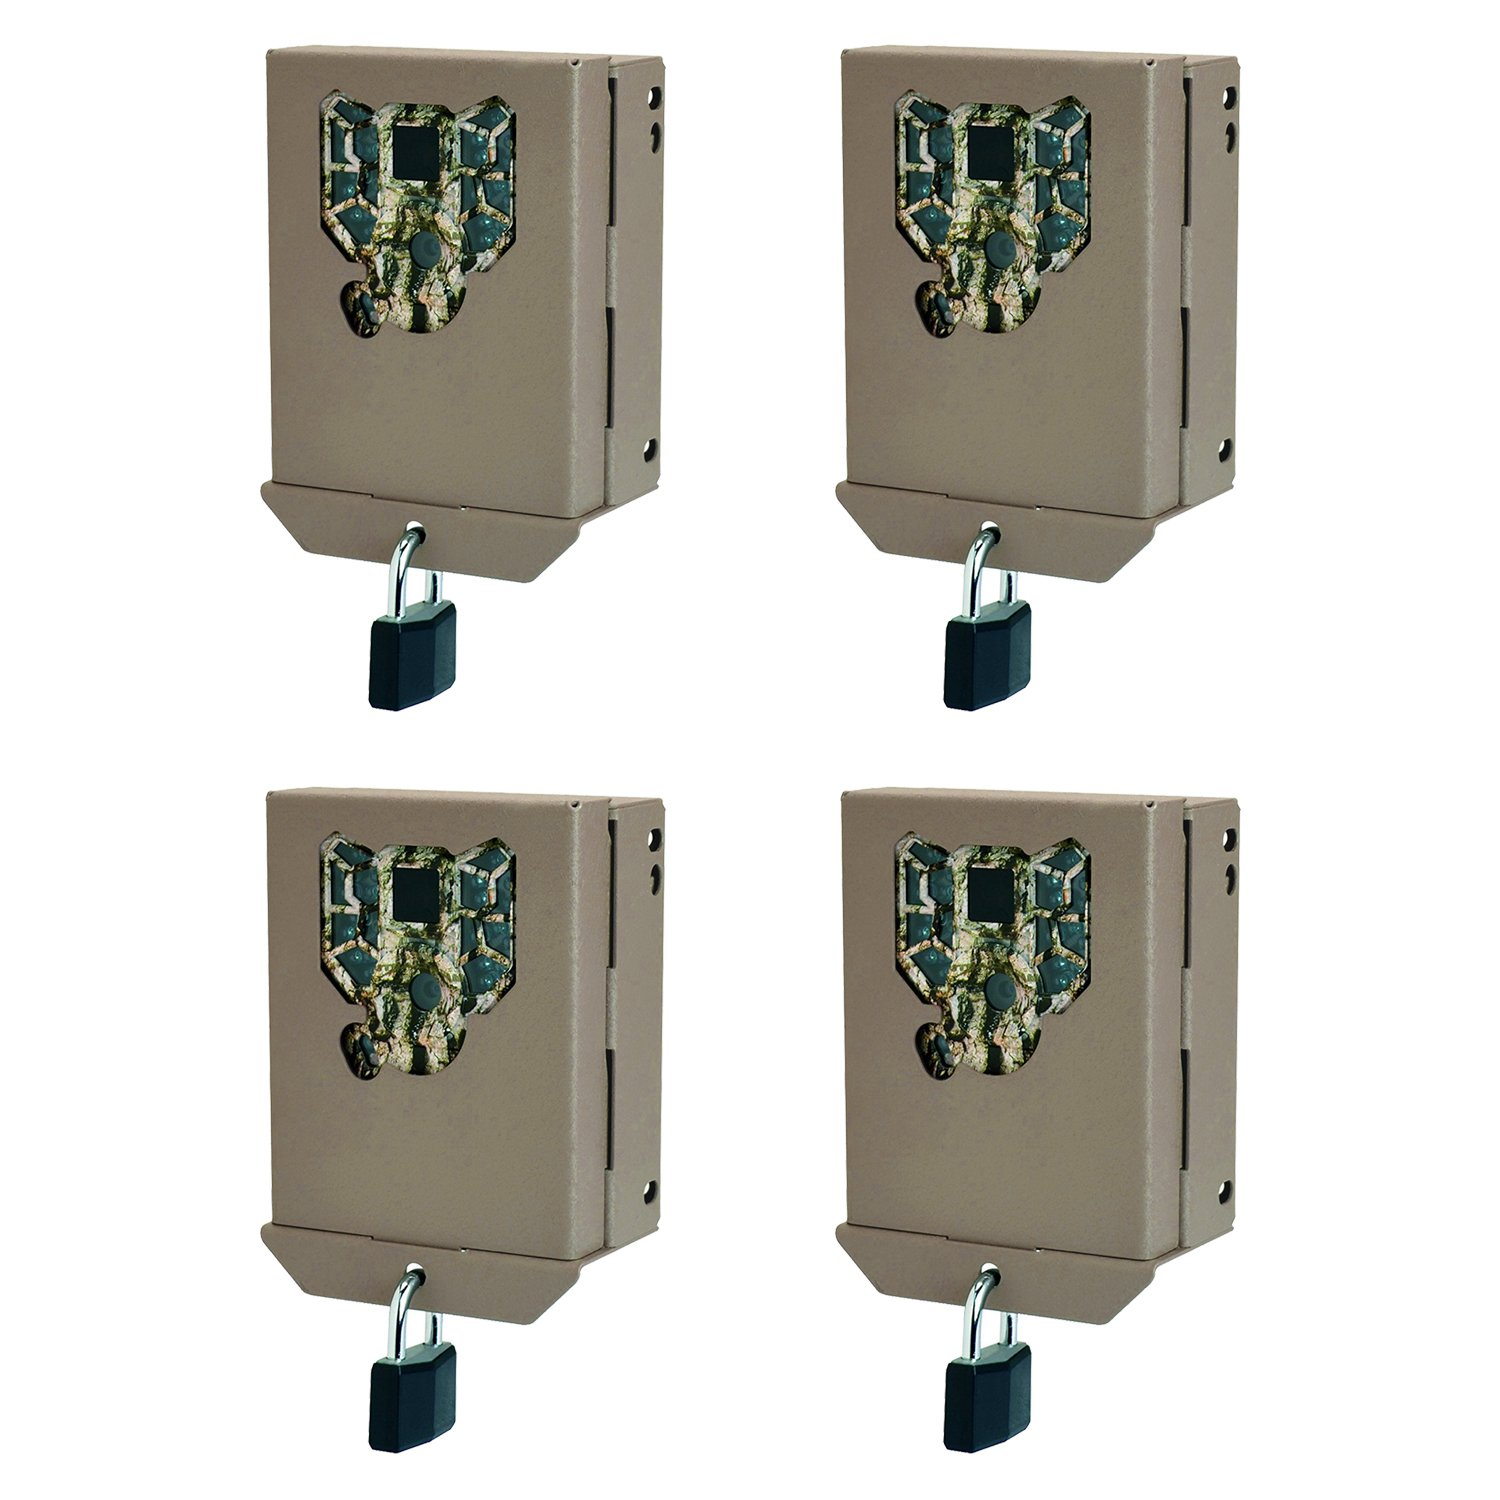 Stealth Cam PX Series Game Trail Camera Steel Security Case Box, 4 Pack BBPX